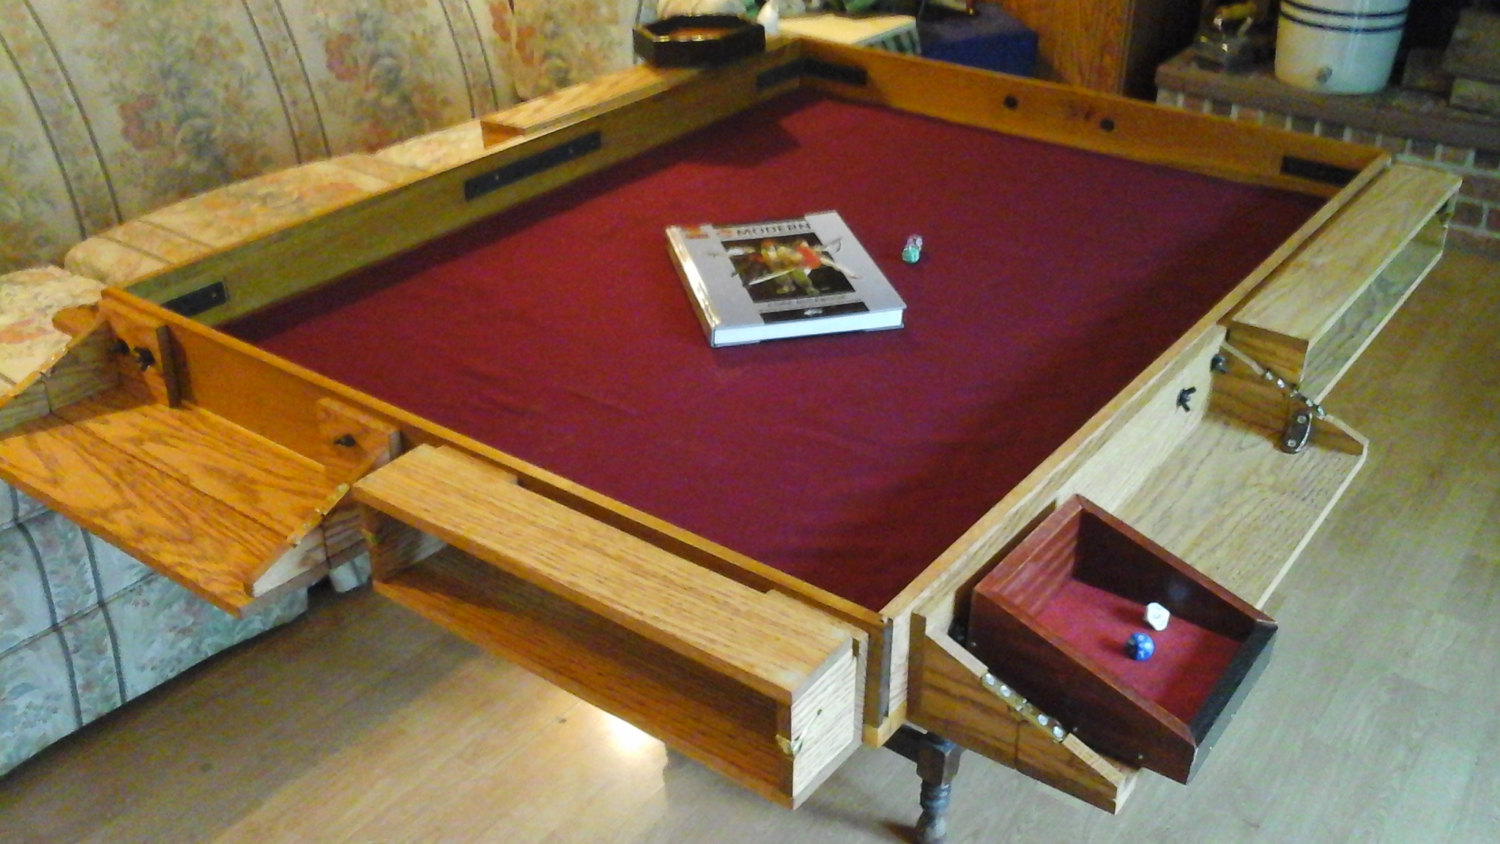 Build a custom gaming table igeekout net for How to build a custom home on a budget